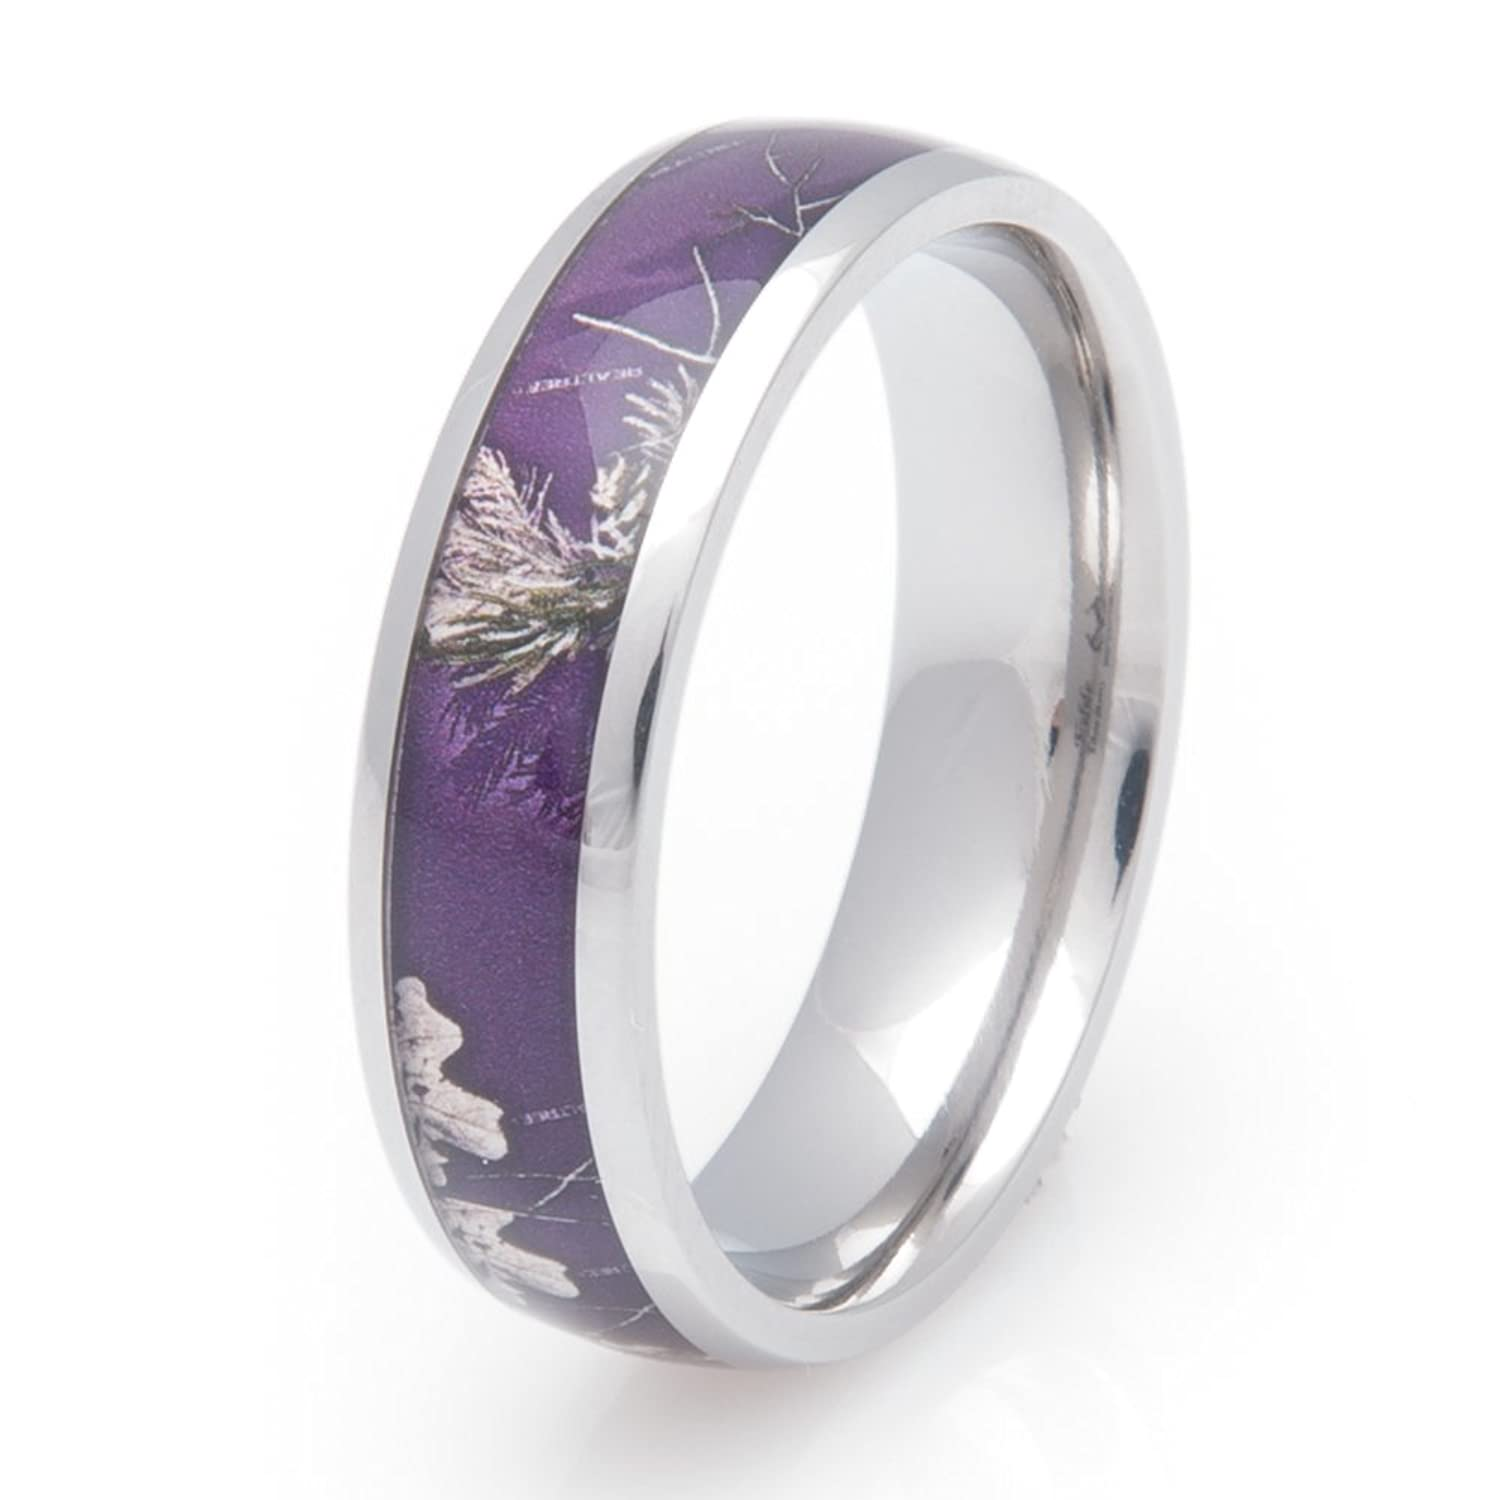 Amazon: Womens Titanium Realtree Ap Purple Camo Wedding Band, 6mm Fort Fit: Jewelry